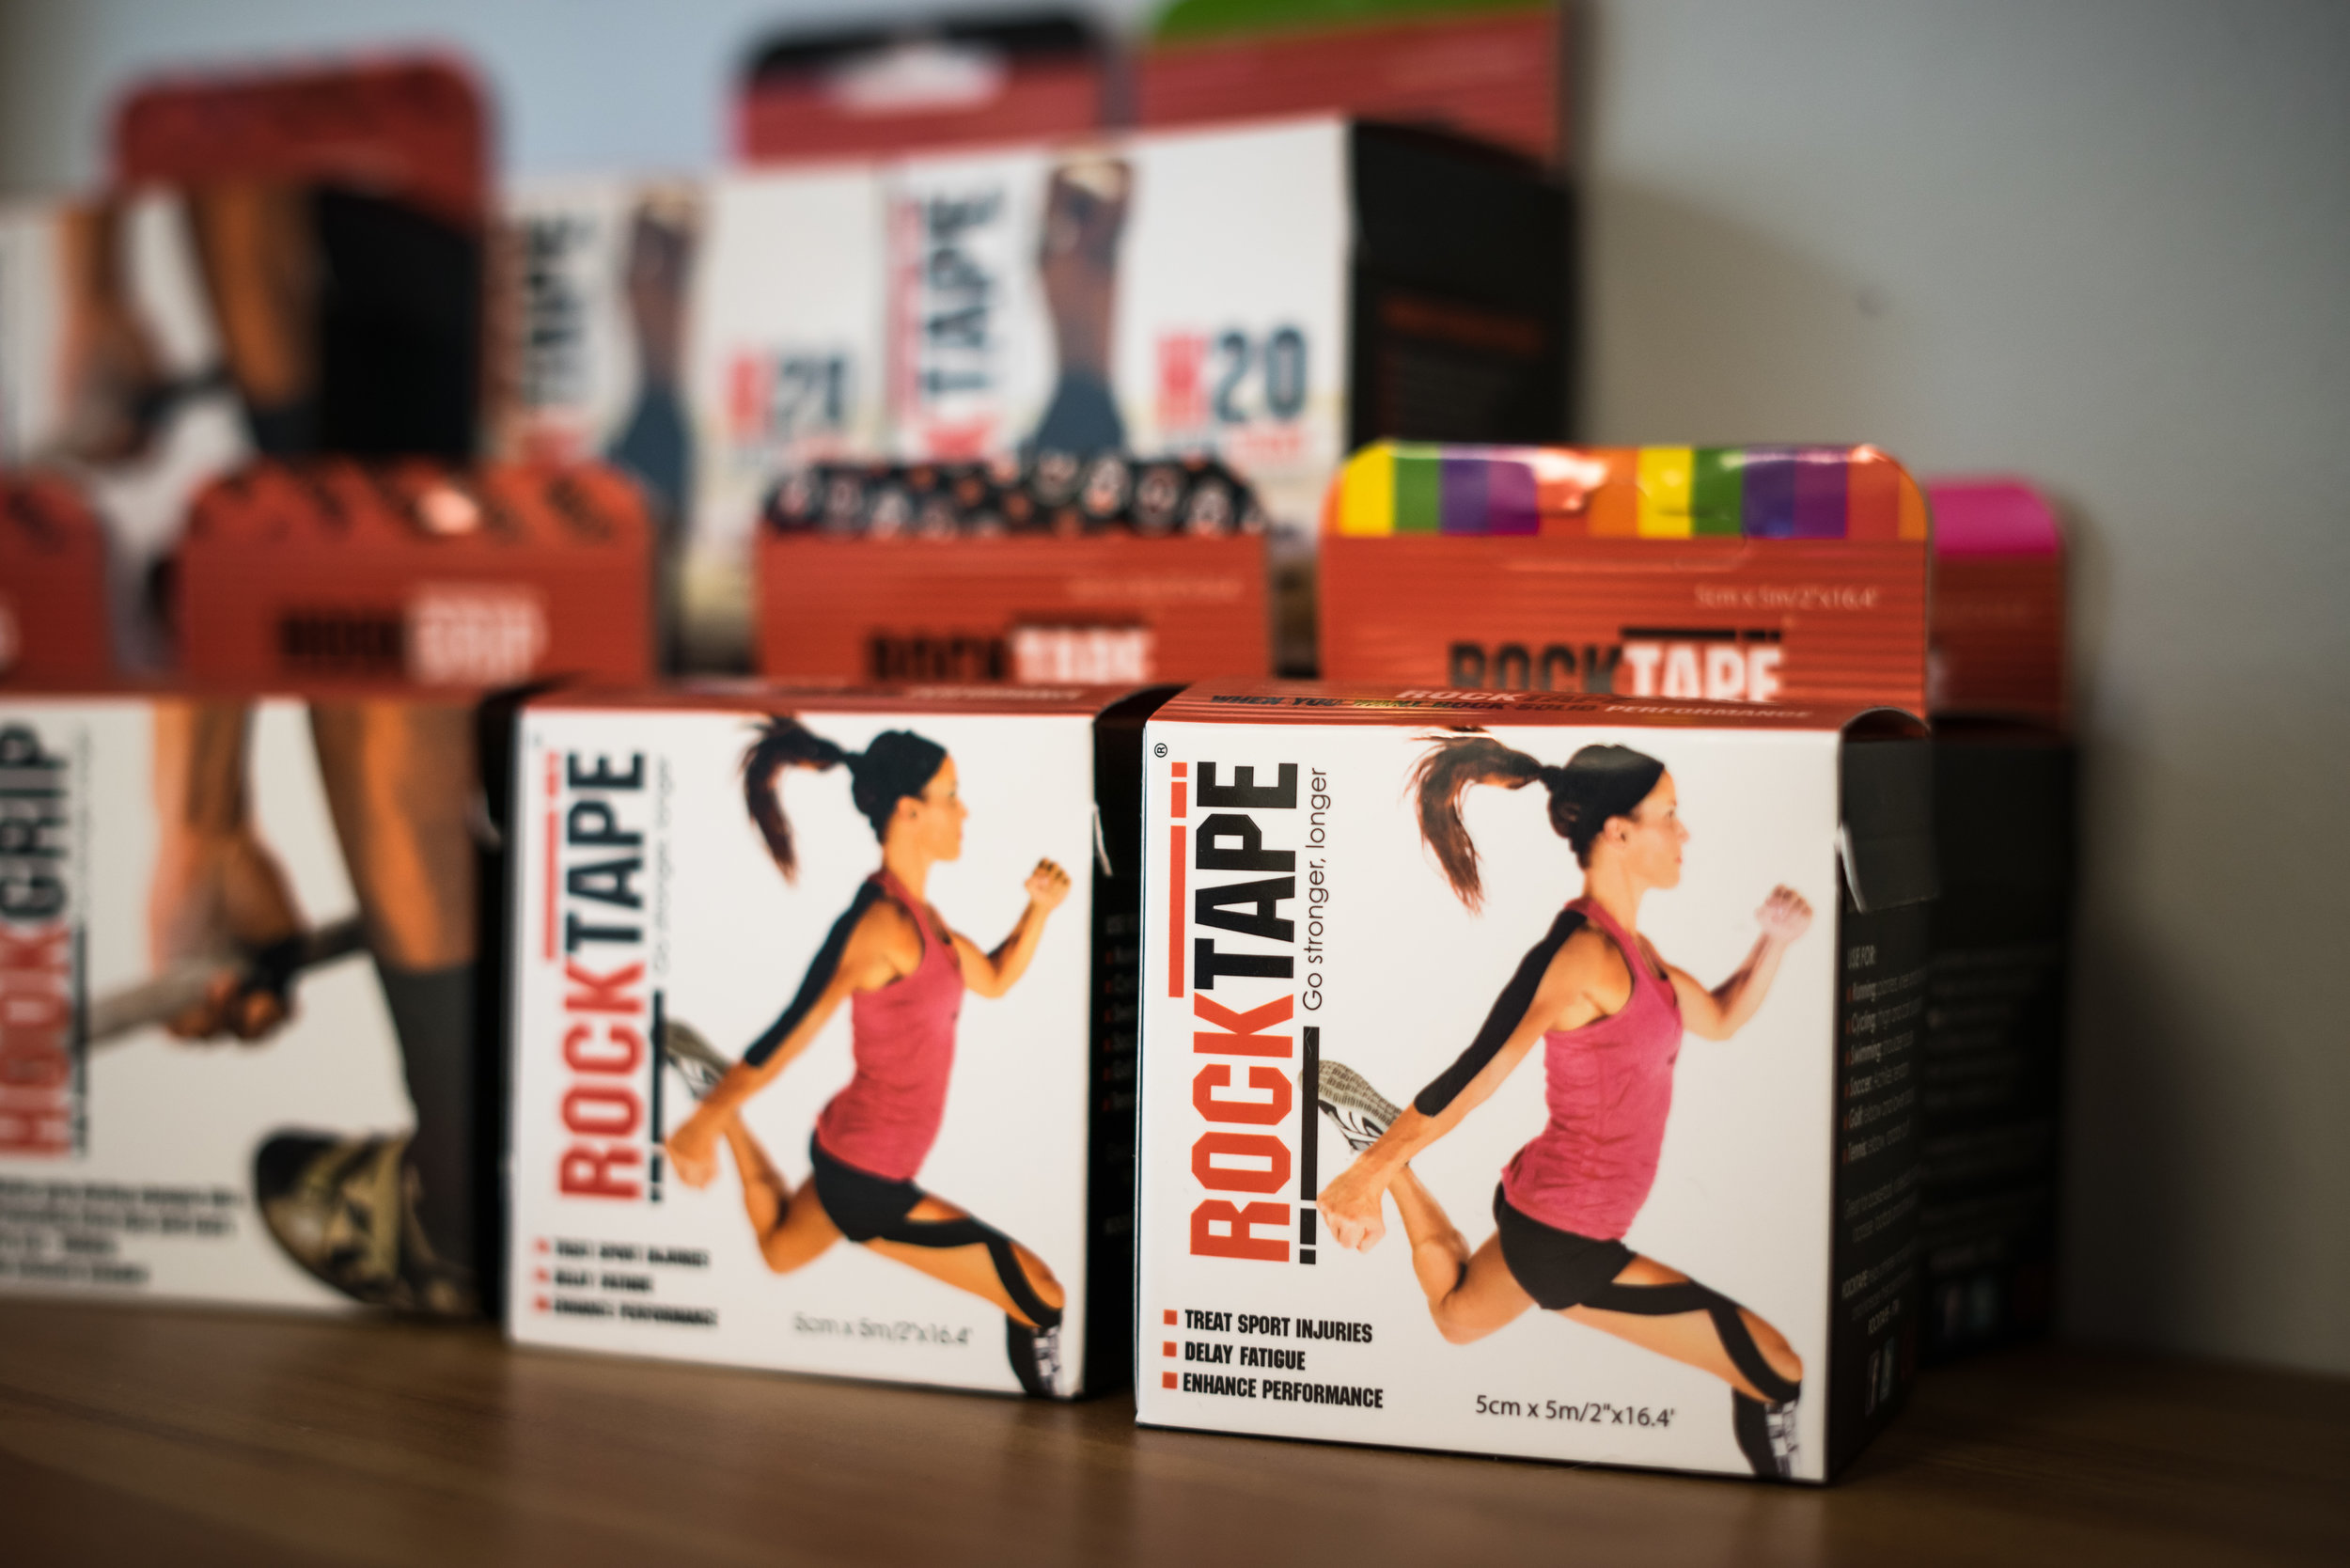 Rocktape - Flexible tape is used as an adjunct to reinforce desired movement patterns or reduce swelling and discomfort in an acute injury.